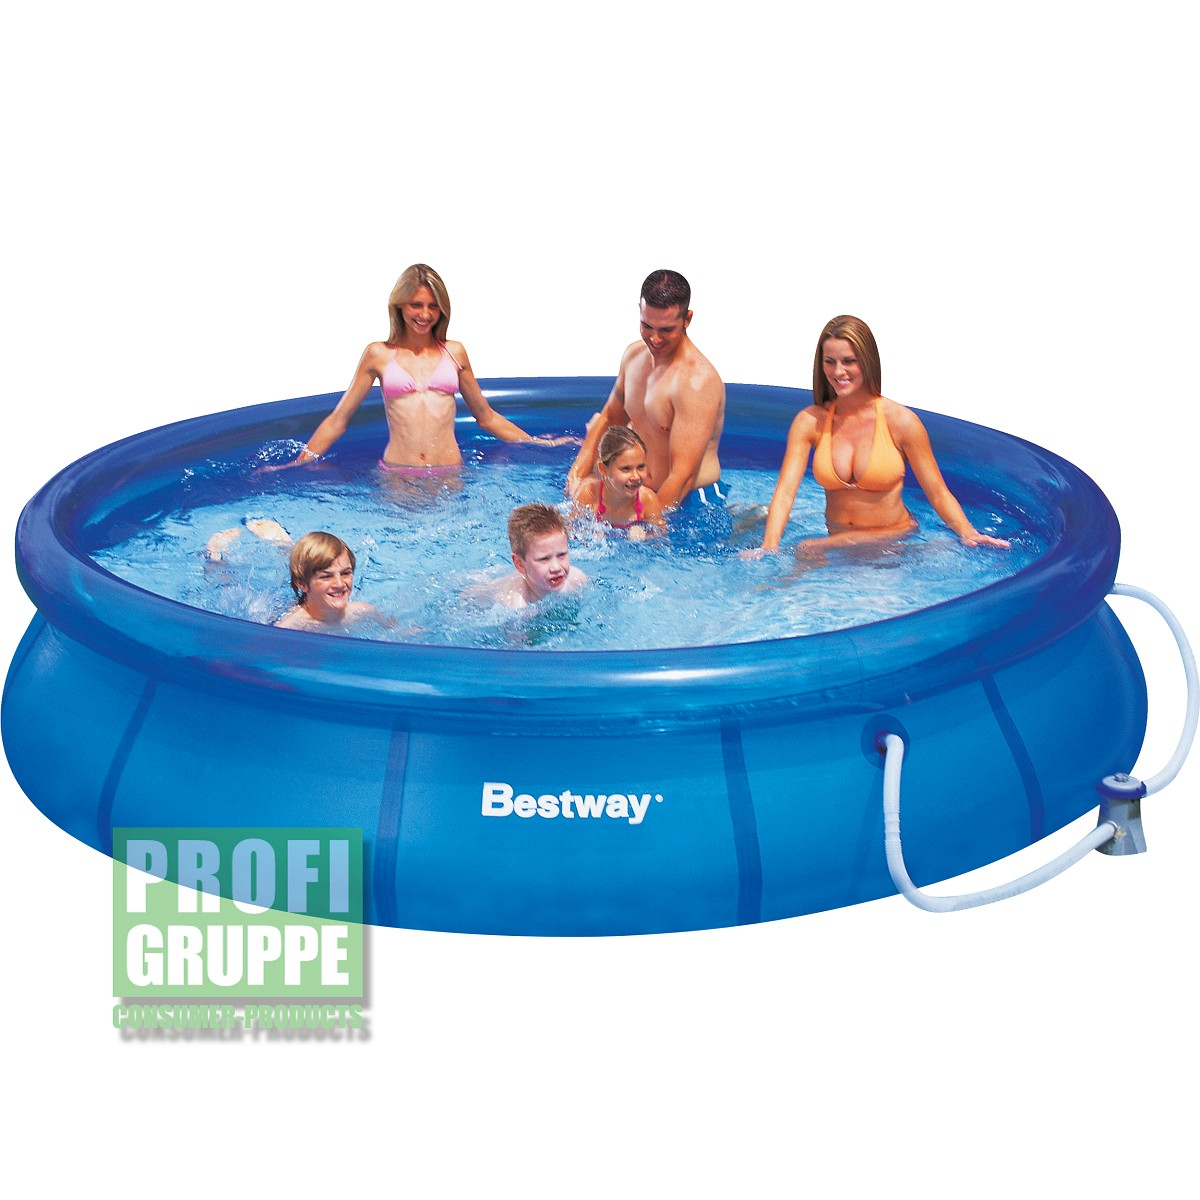 Bestway Pool Pumpe Zieht Luft Bestway 366x76cm Fast Set Pool Quick Up Schwimmbecken Mit